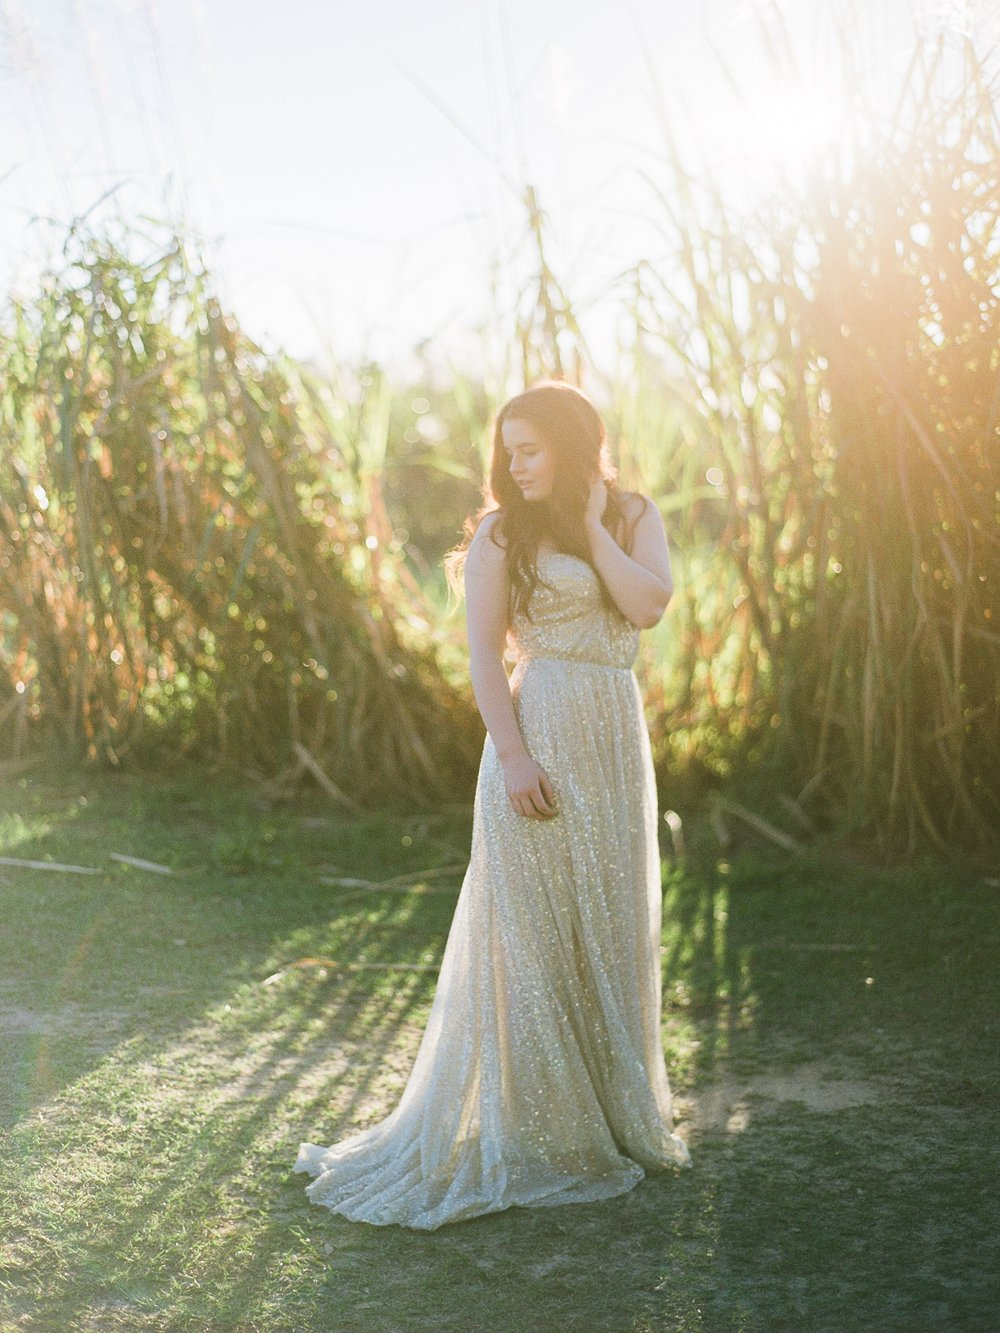 Sugarcane Inspired Shoot 2 10.jpg